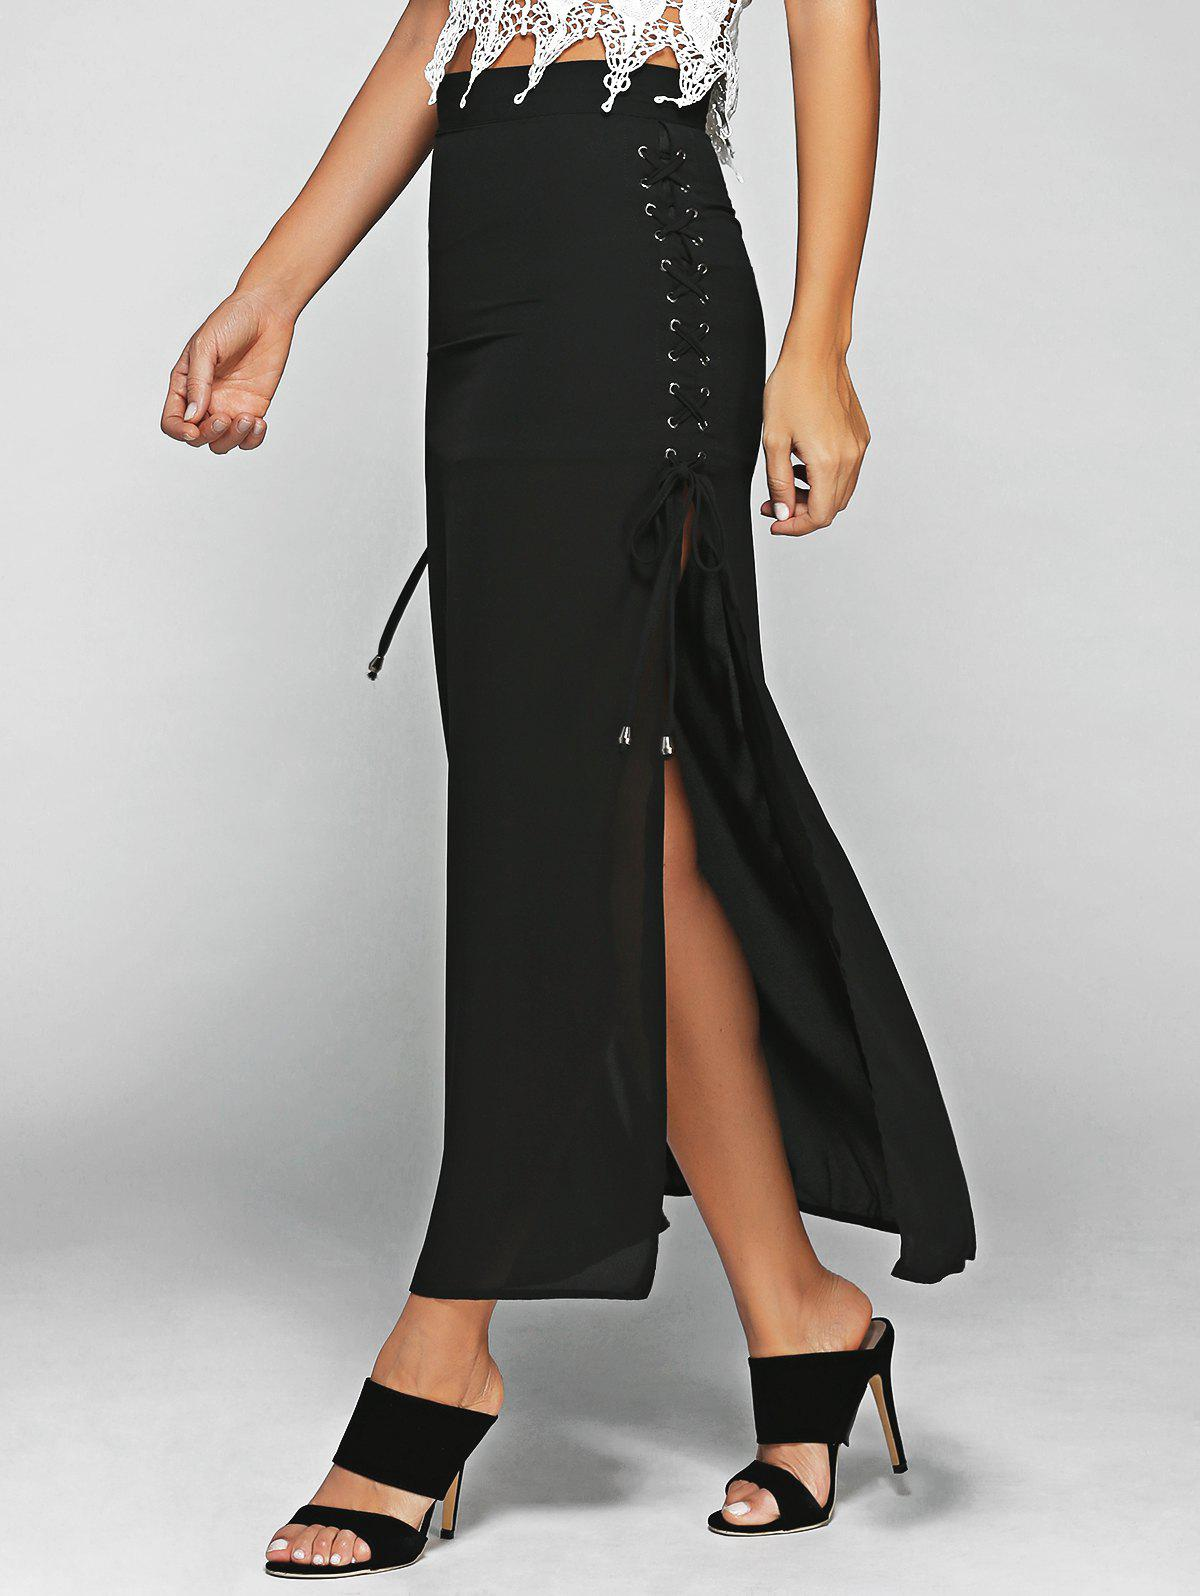 High Waist Lace-Up High Slit Maxi Skirt high waist lace up high slit maxi skirt